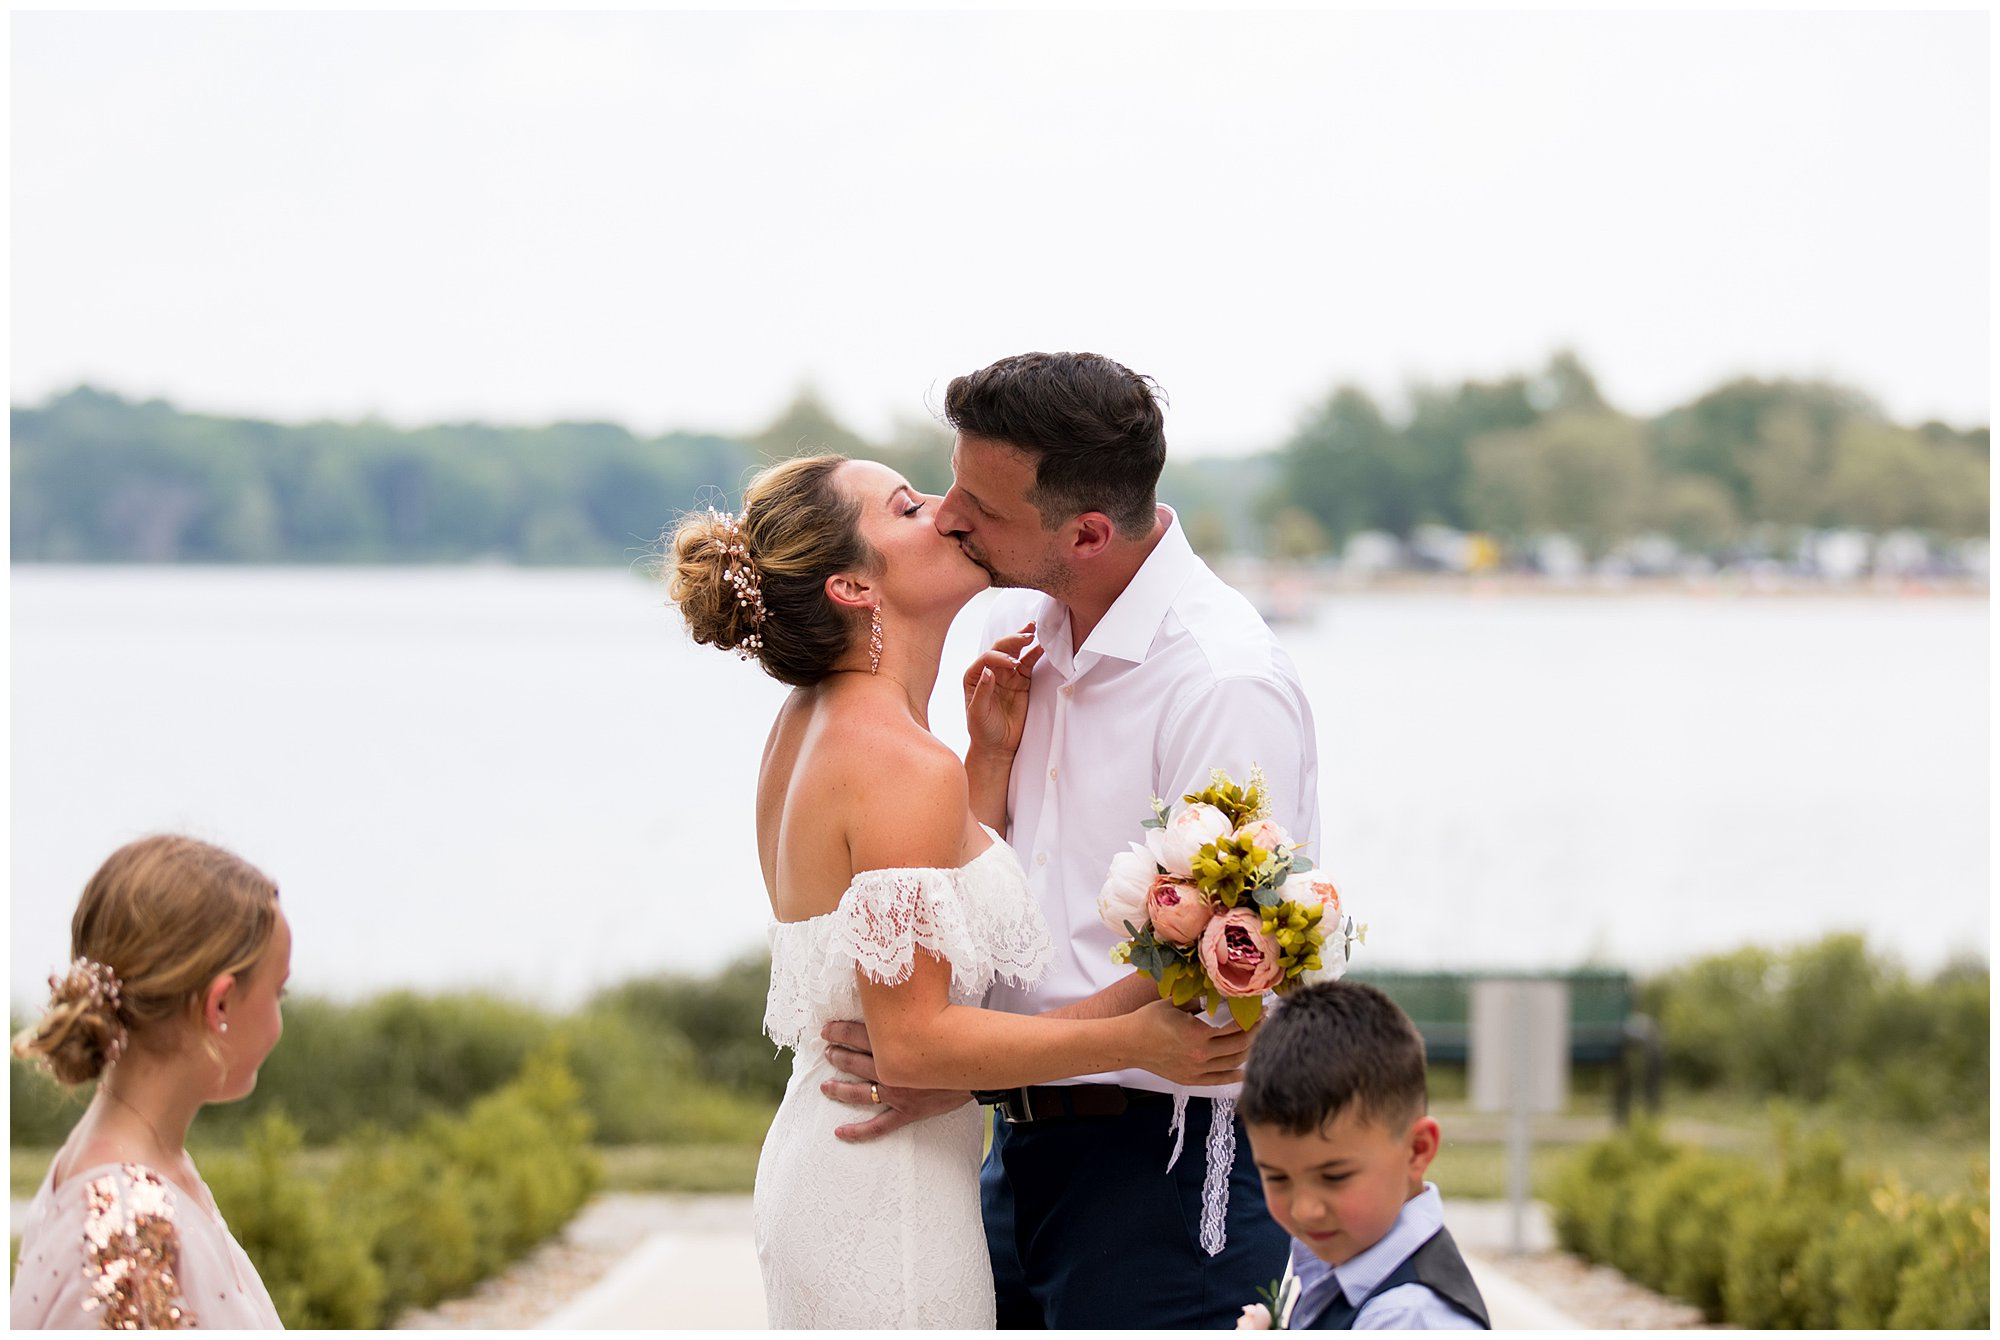 bride and groom kiss at the end of wedding ceremony at Lucerne Park in Warsaw Indiana